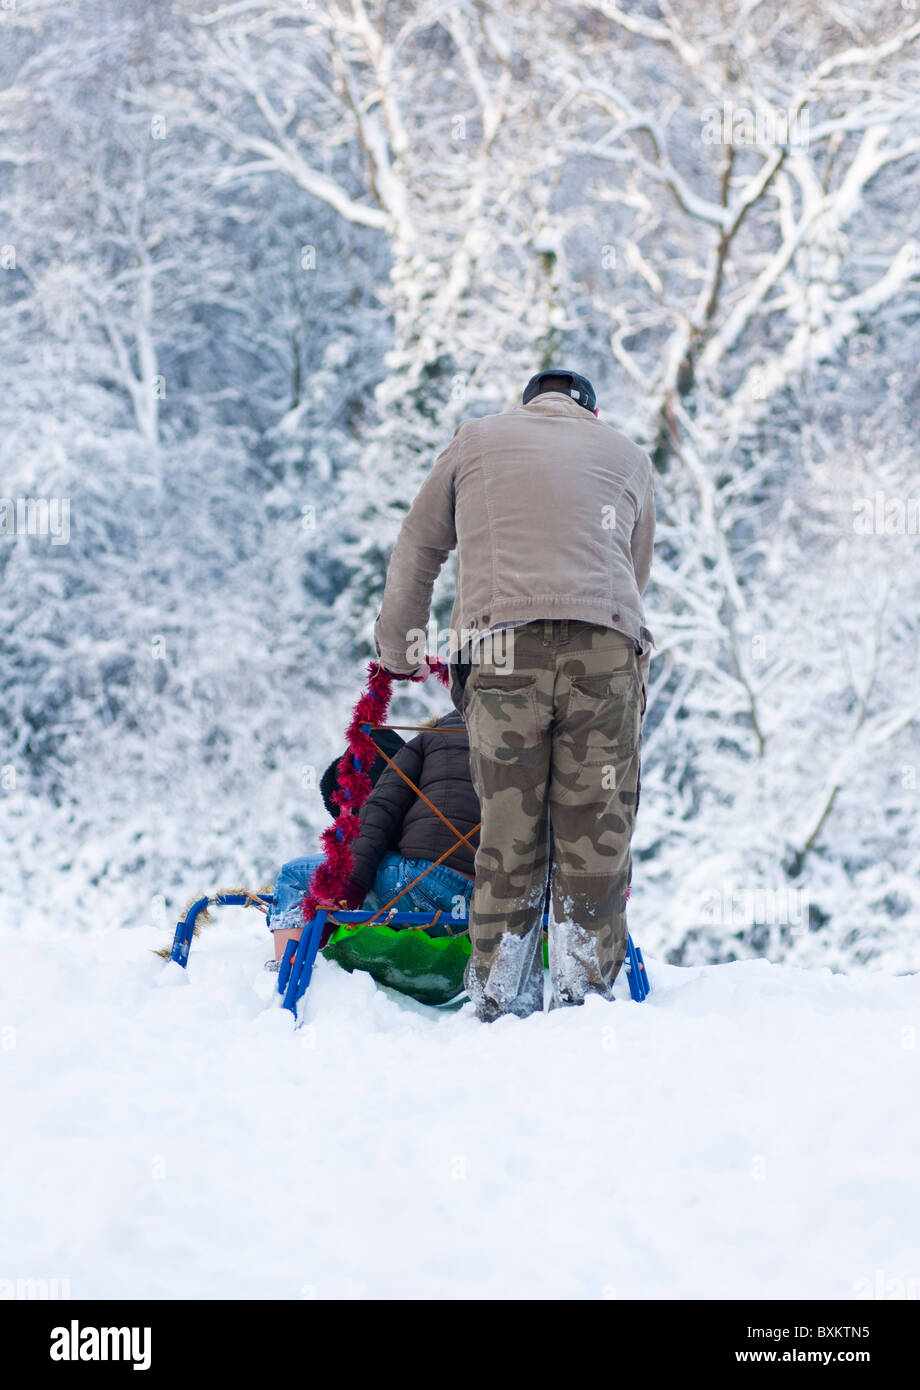 Dad pushes his child's sledge down the hill in Worcestershire, England, during the winter of 2010. Stock Photo